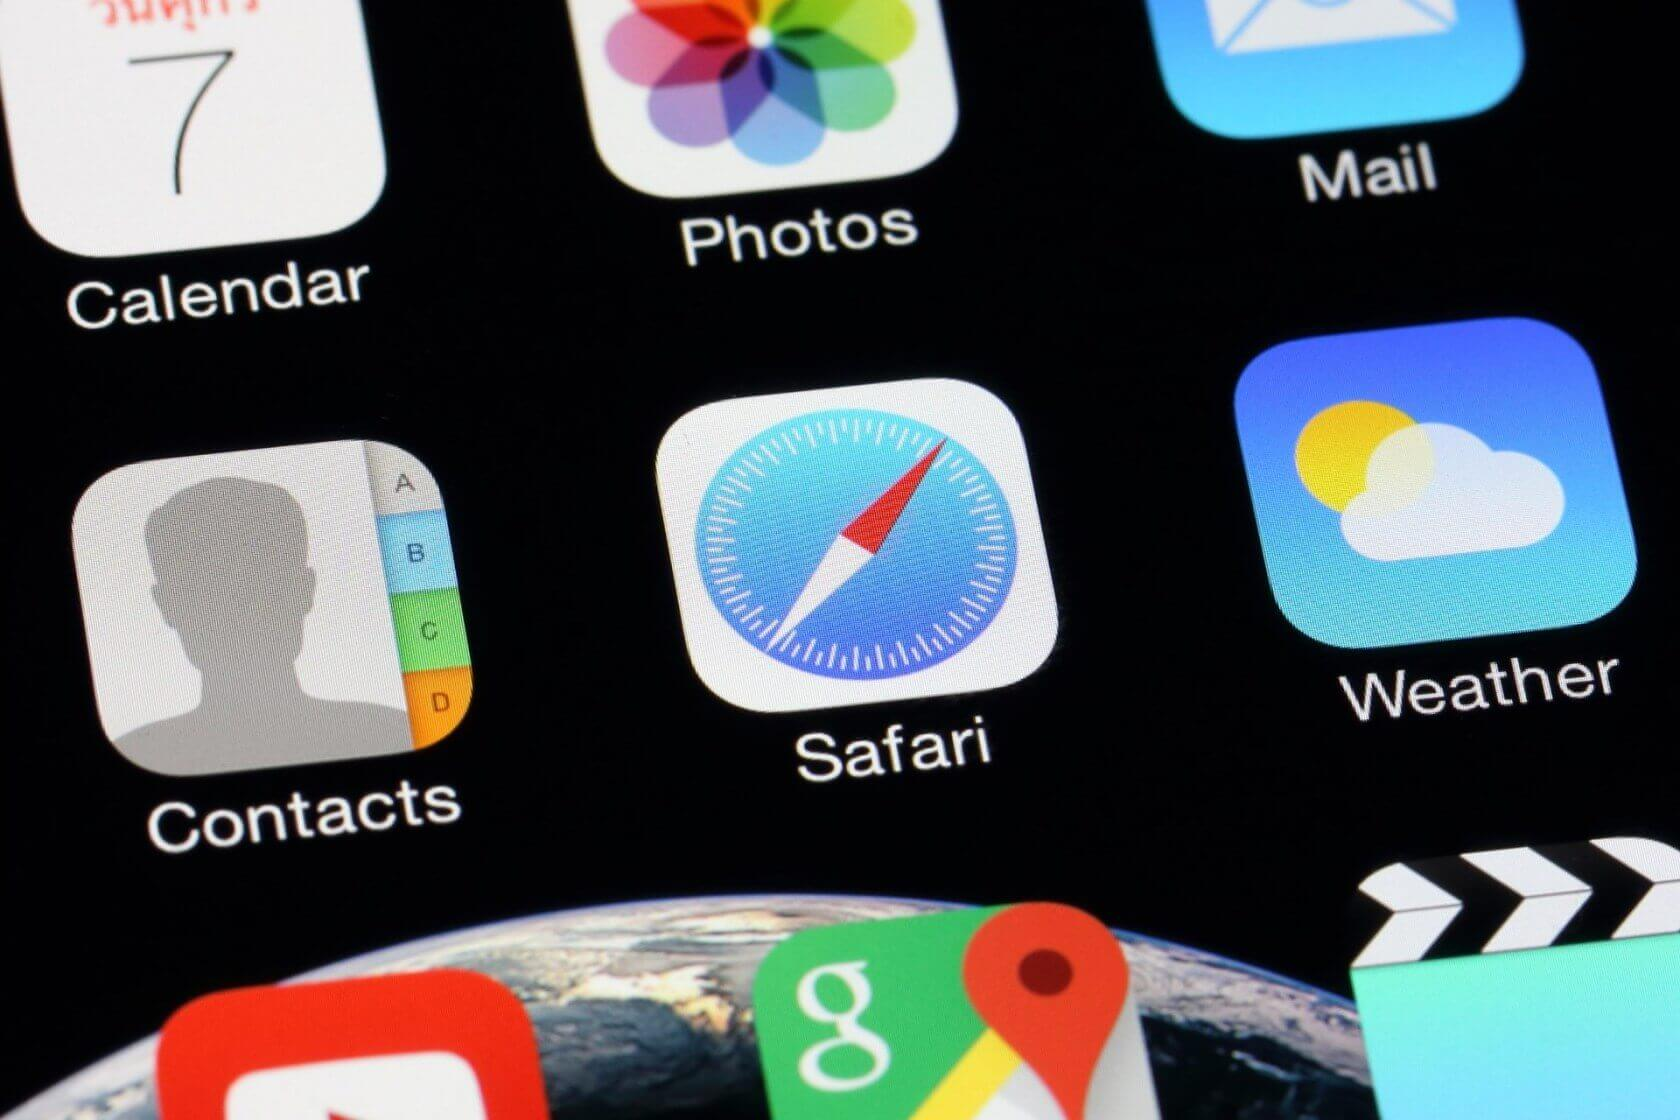 Safari in iOS 13 was sending browsing data to Chinese tech giant Tencent